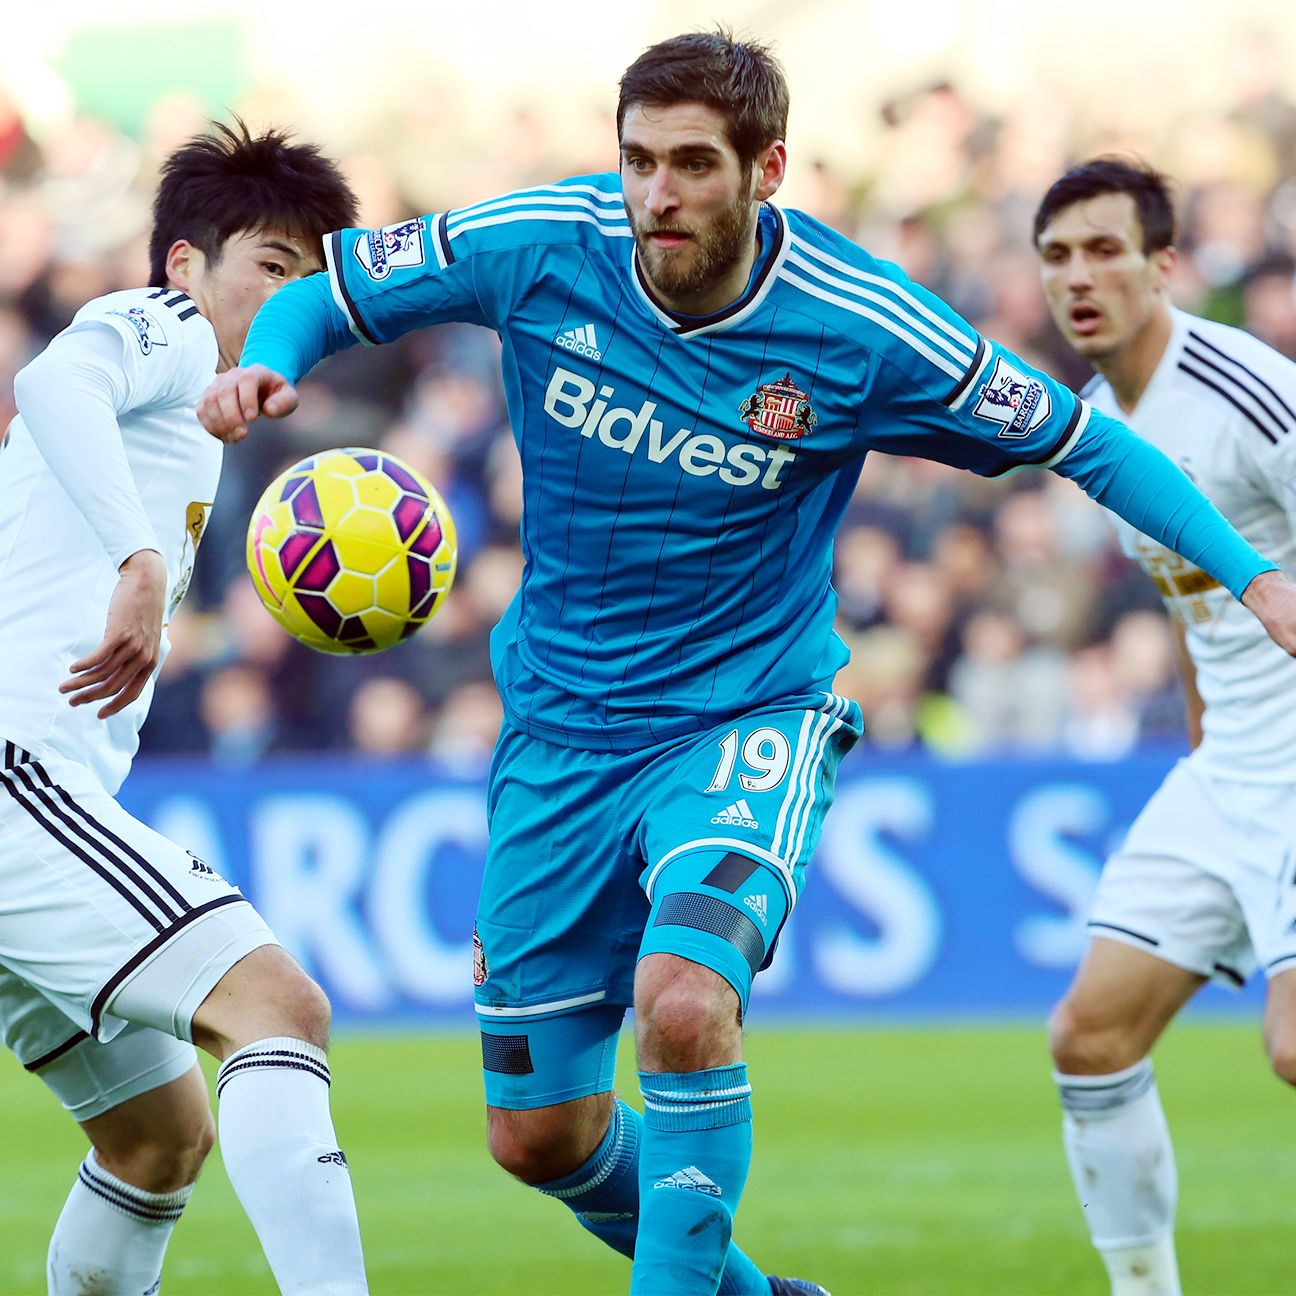 Should Danny Graham break his scoring slump, Sunderland could find themselves worry-free come May.